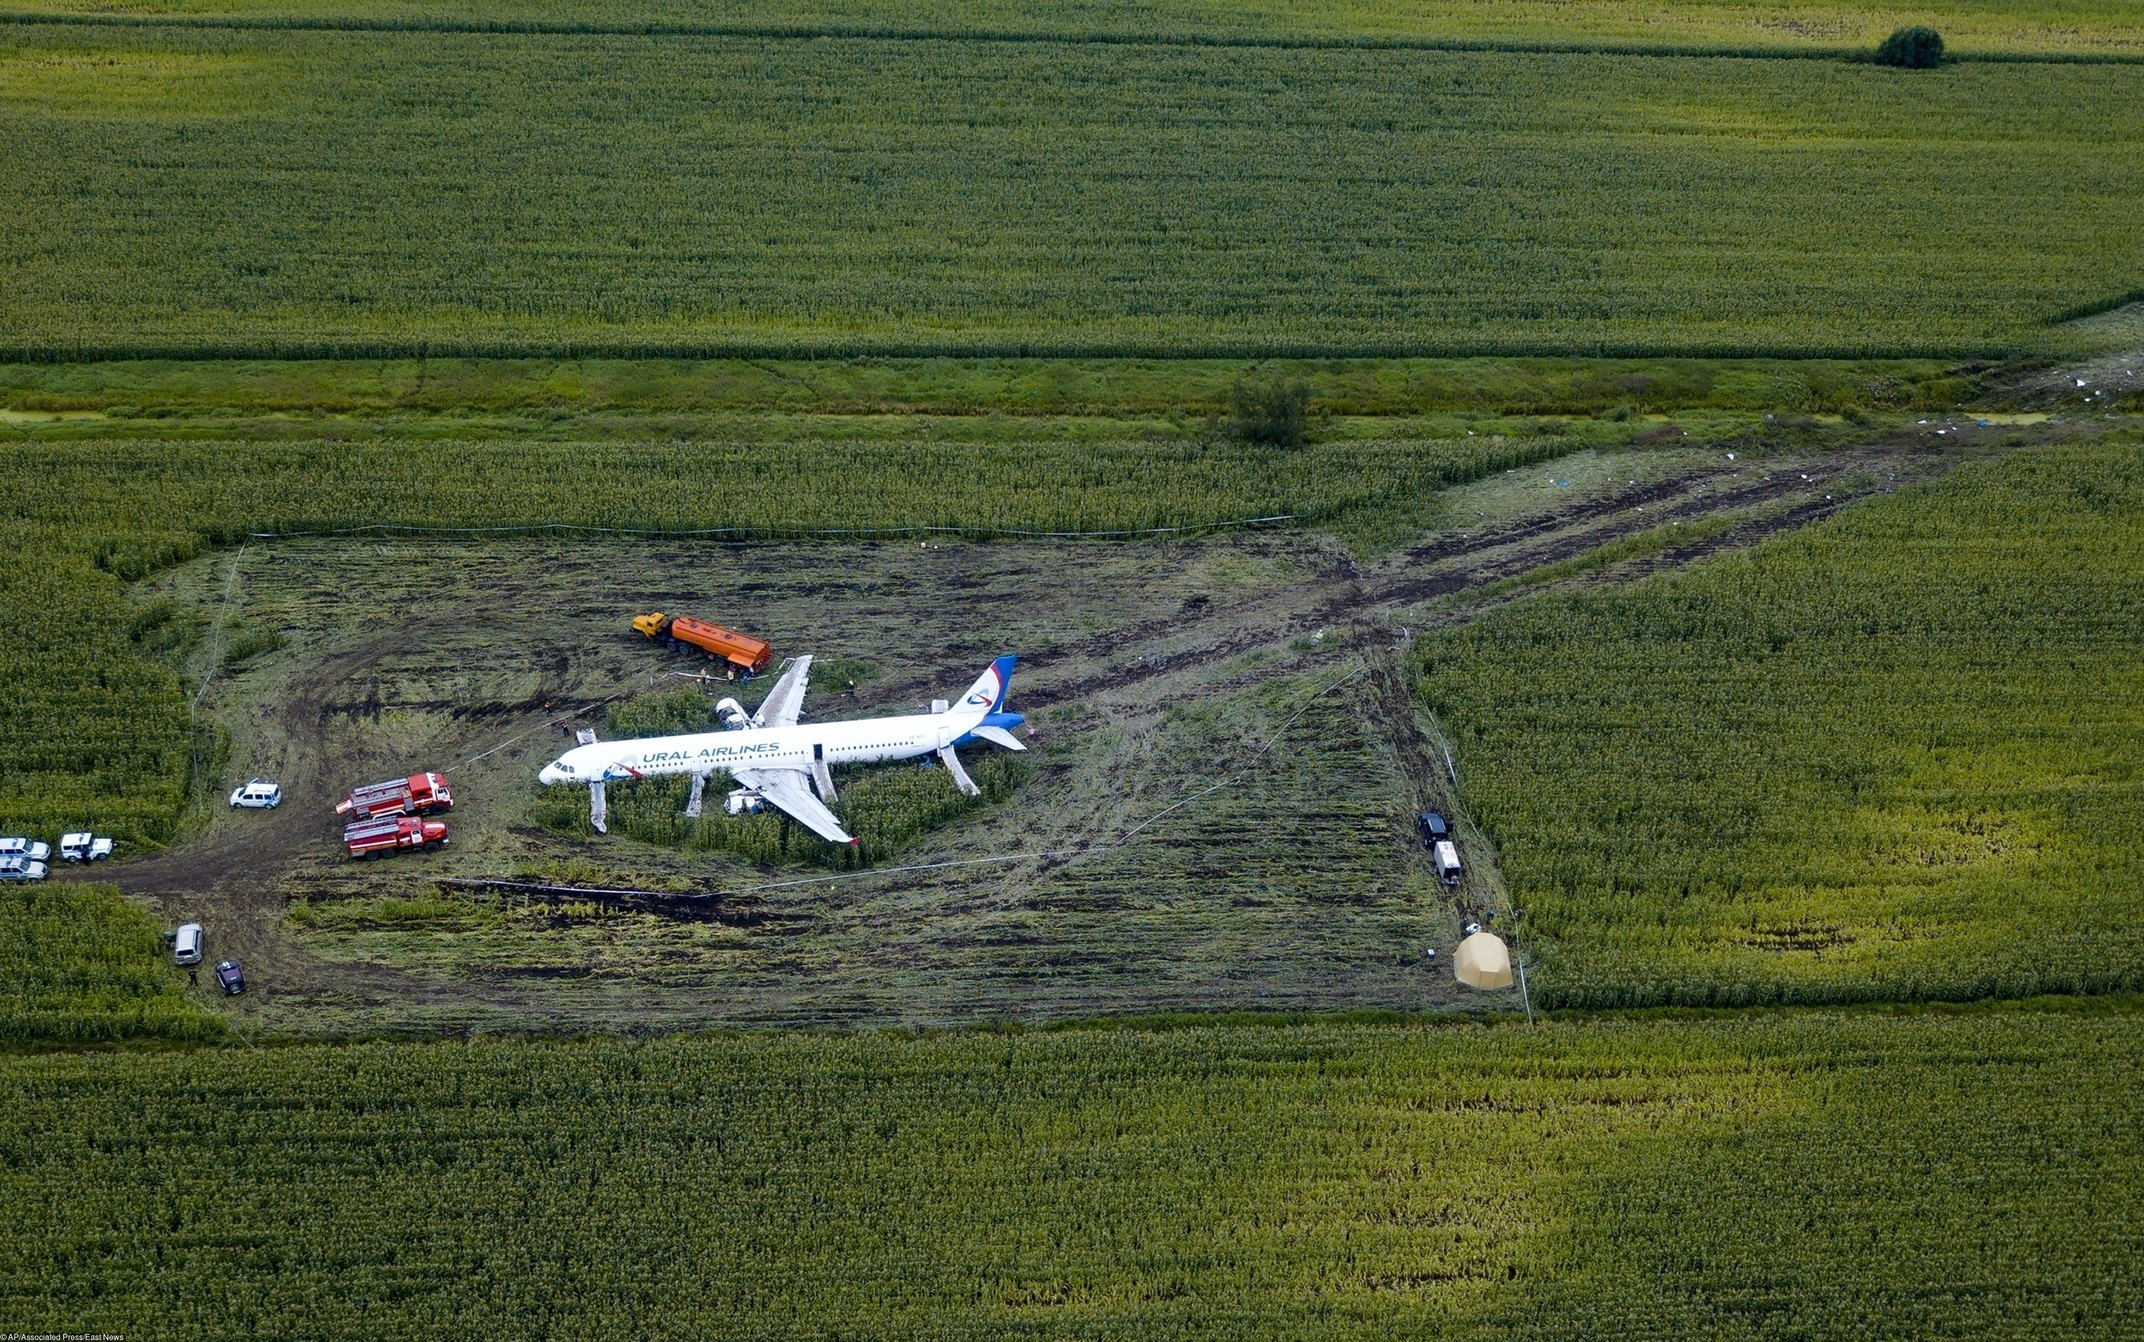 A Russian Ural Airlines' A321 plane is seen after an emergency landing in a cornfield near Ramenskoye, outside Moscow, Russia, Friday, Aug. 16, 2019. Russian President Vladimir Putin on Friday awarded the nation's highest medal, the Hero of Russia, to the pilot who managed to smoothly land his disabled passenger plane in a cornfield after a flock of birds hit both engines and knocked them out.